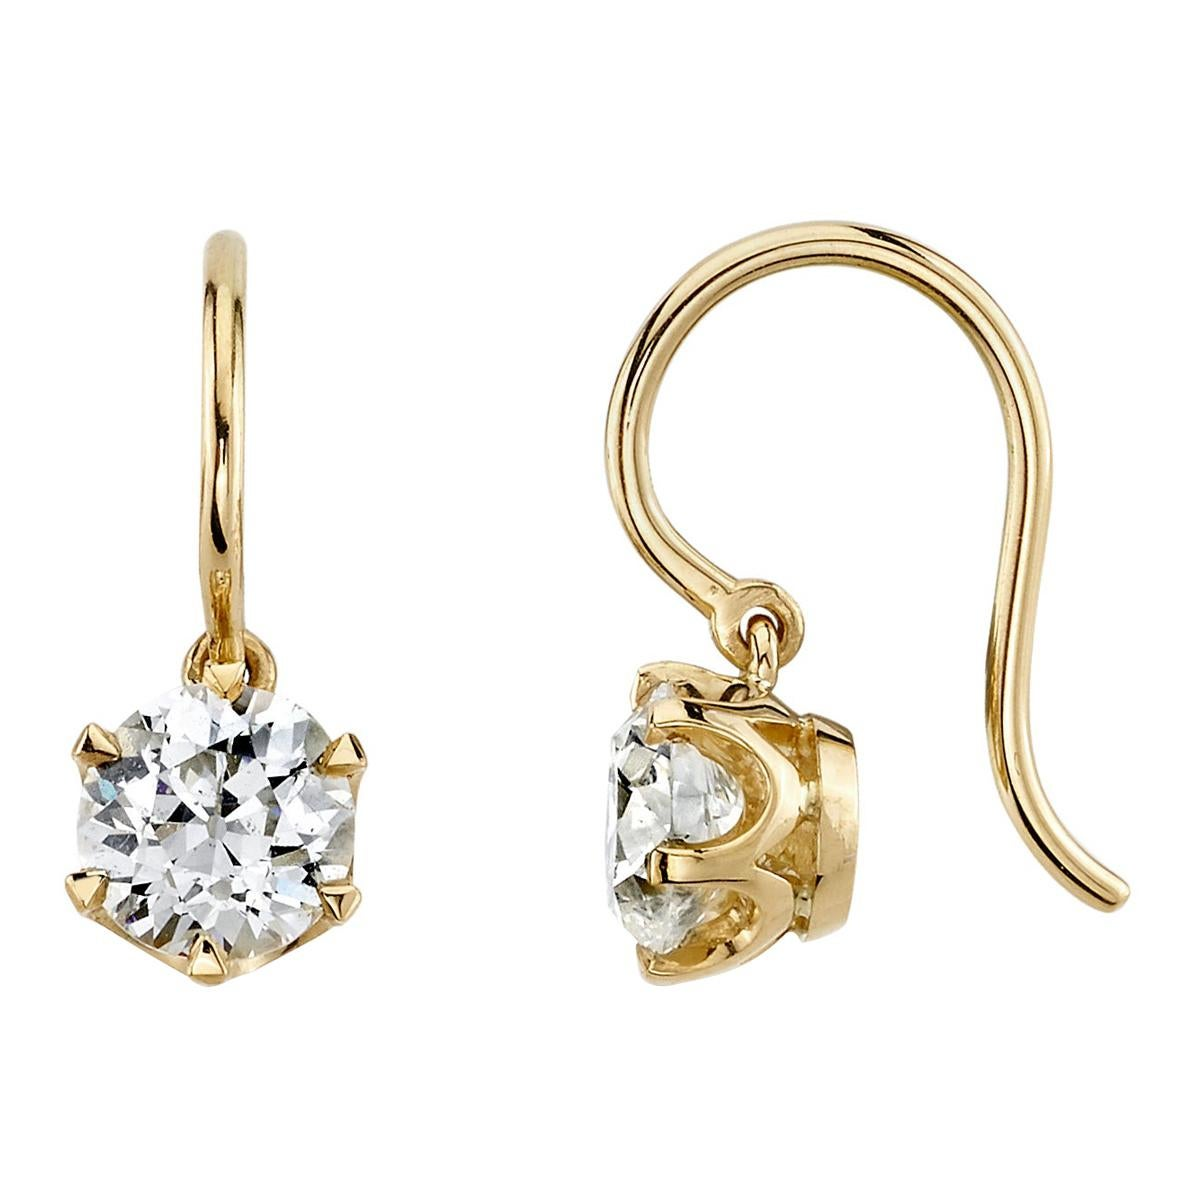 Handcrafted Gia Old European Cut Diamond Earrings by Single Stone